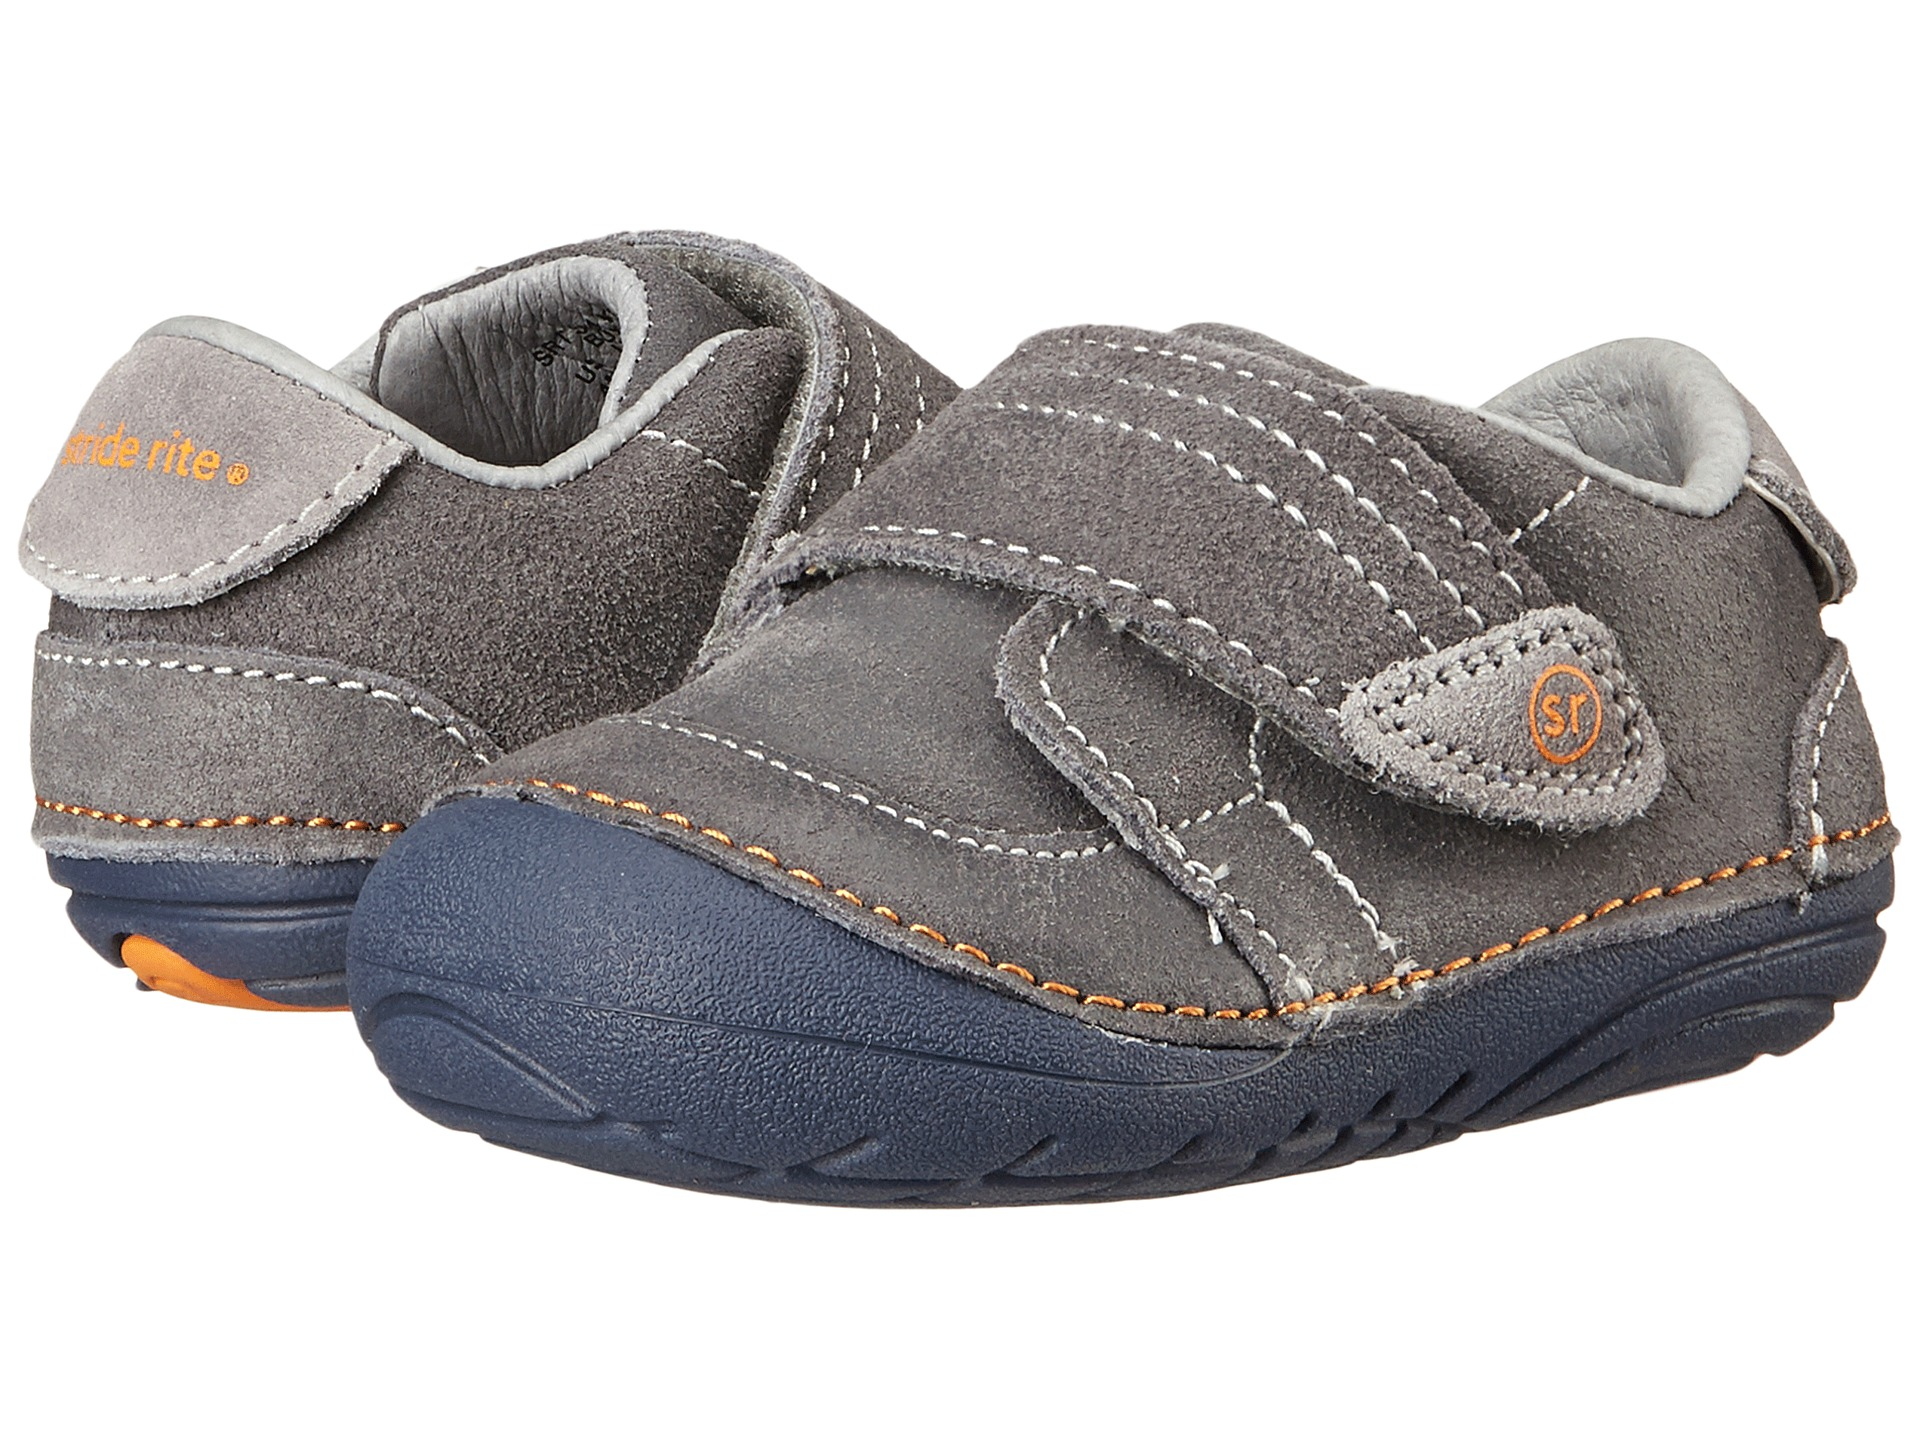 Shop for Stride Rite Kids' Shoes | Dillard's at techriverku3.gq Visit techriverku3.gq to find clothing, accessories, shoes, cosmetics & more. The Style of Your Life.